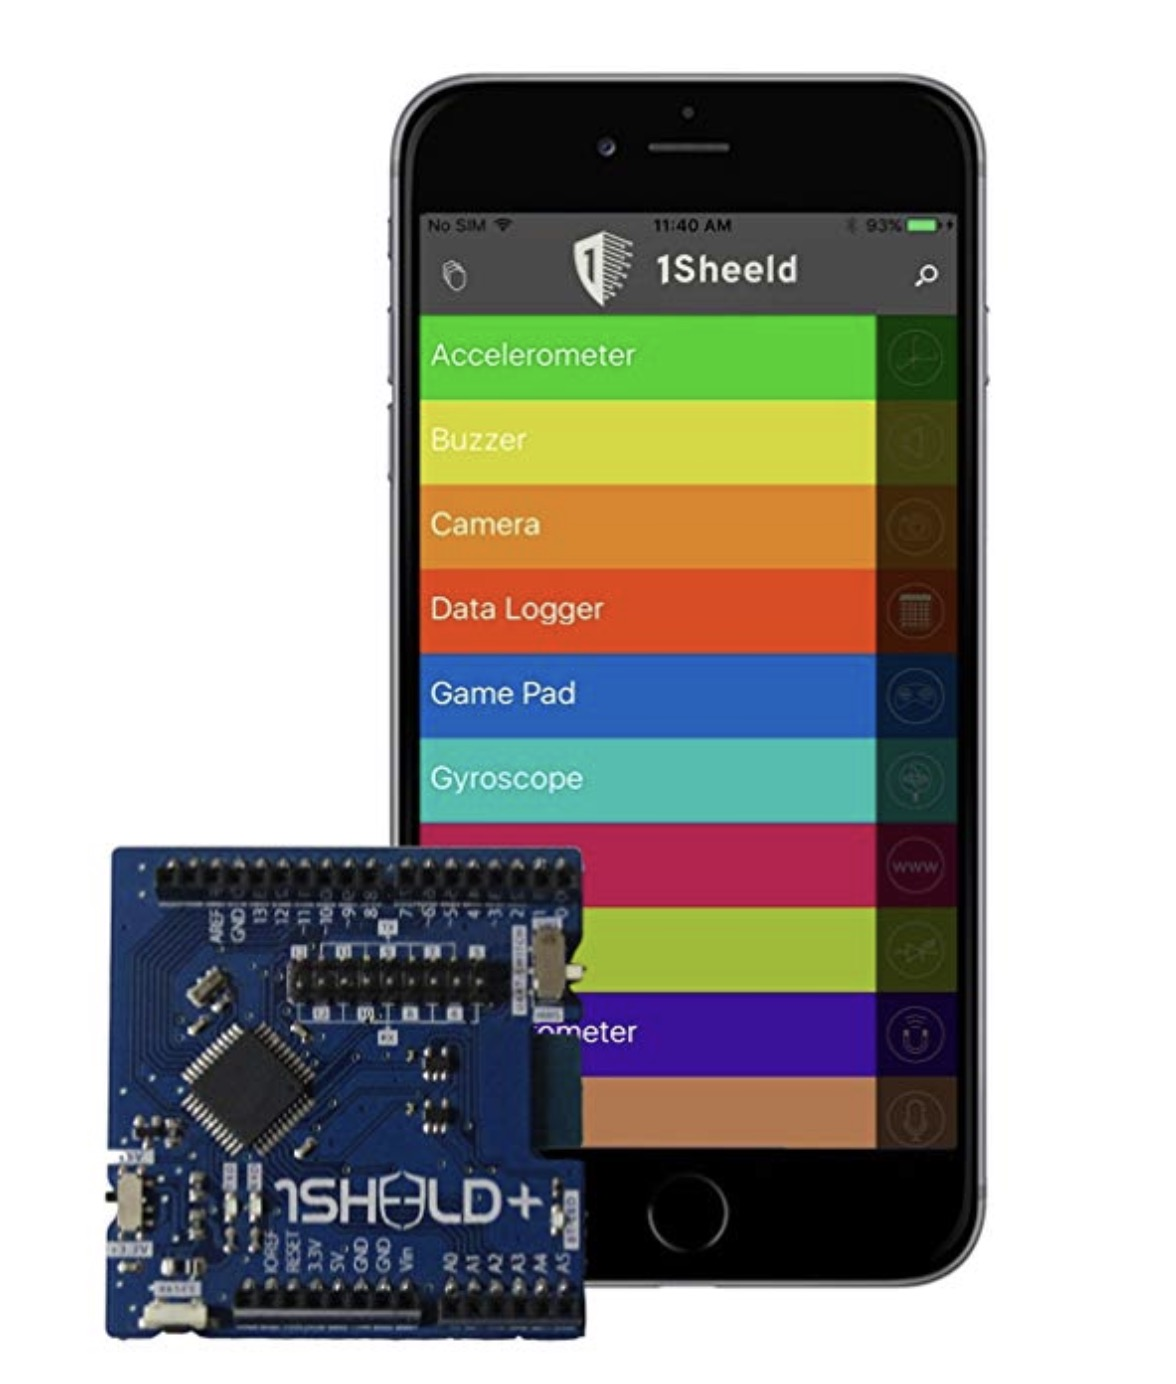 Arduino Shield With Bluetooth (BLE) Module Connects To iOS